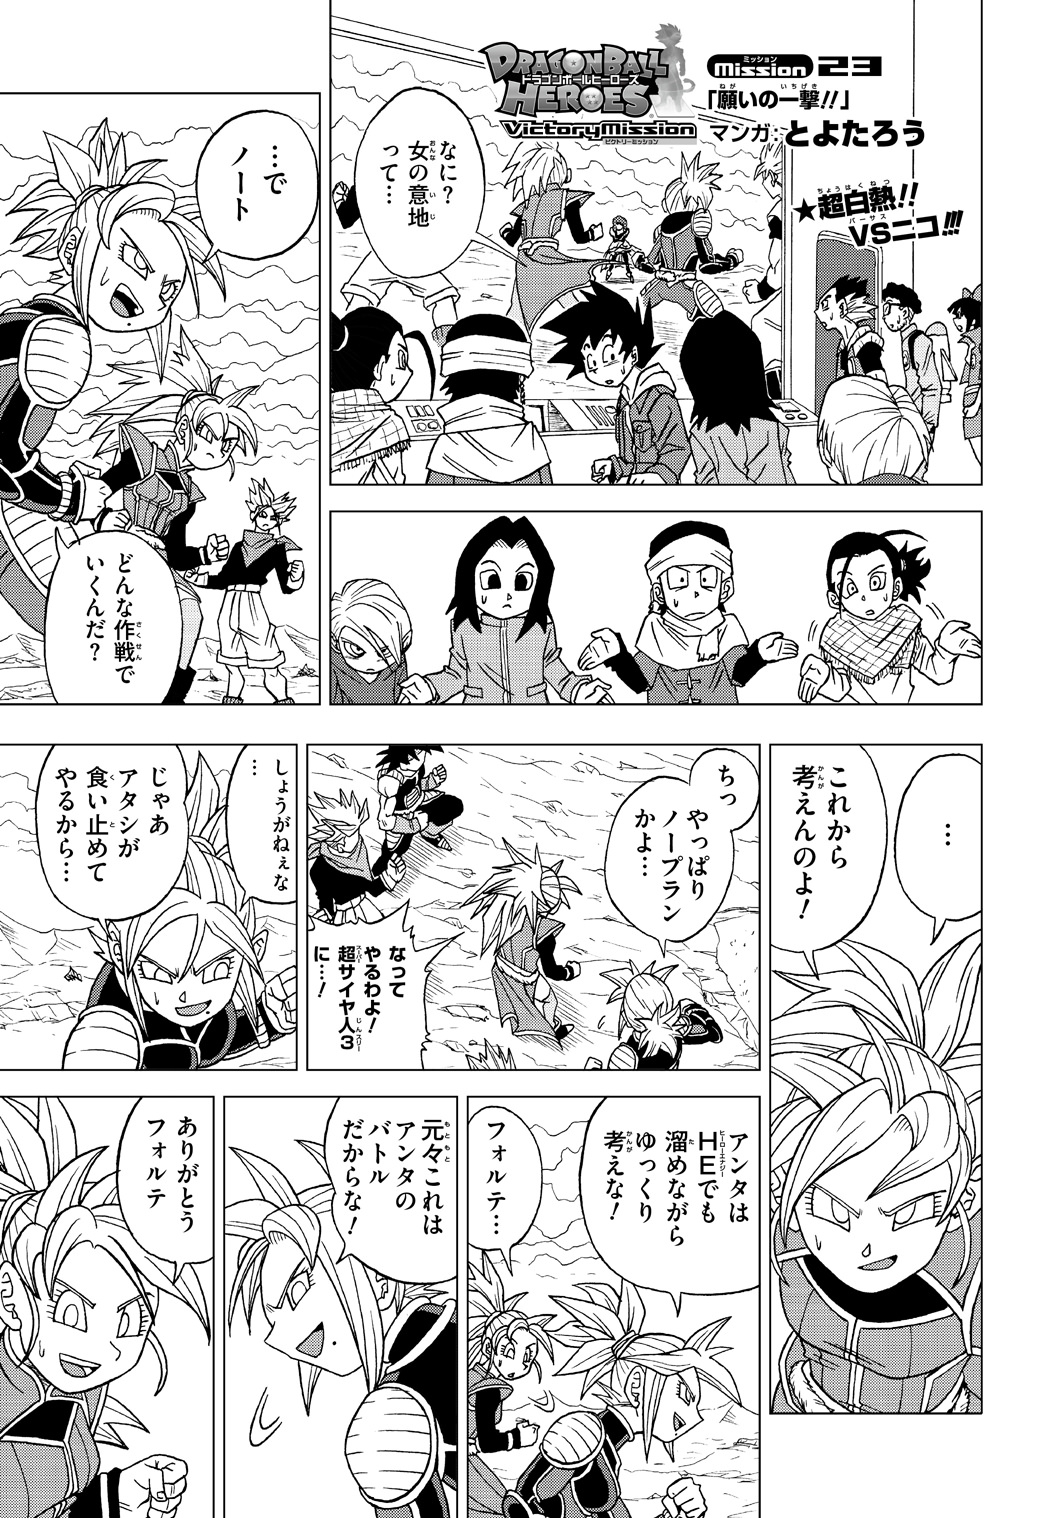 Dragon Ball Heroes Victory Mission Chapitre 023